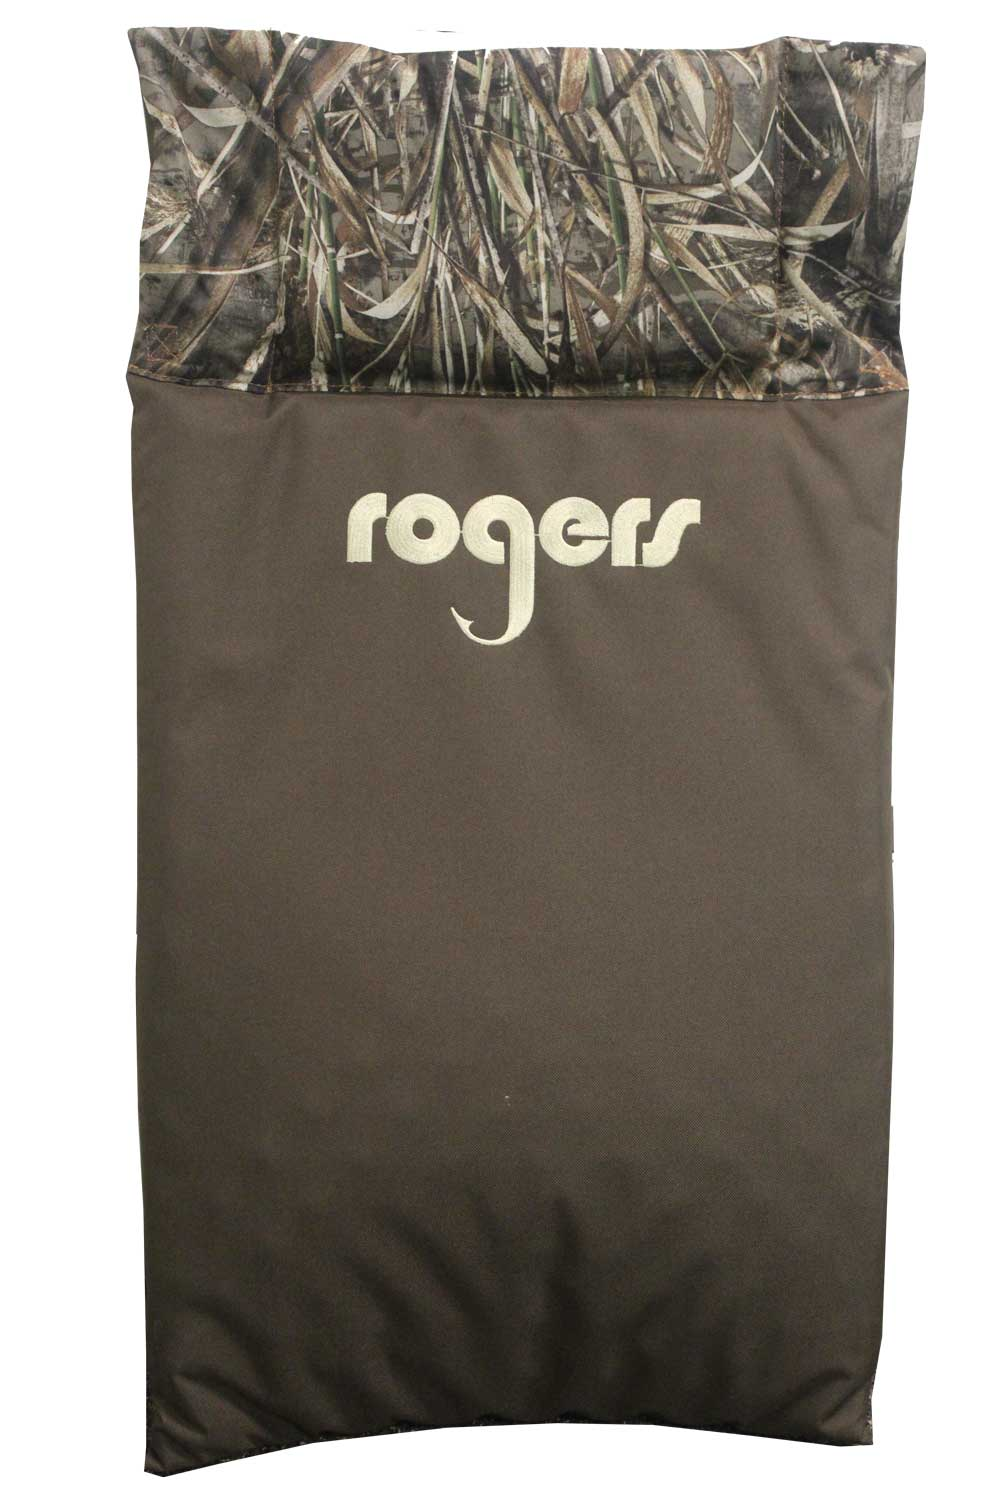 Rogers New Patented Spring Board Blind Accessory in Realtree Max 5